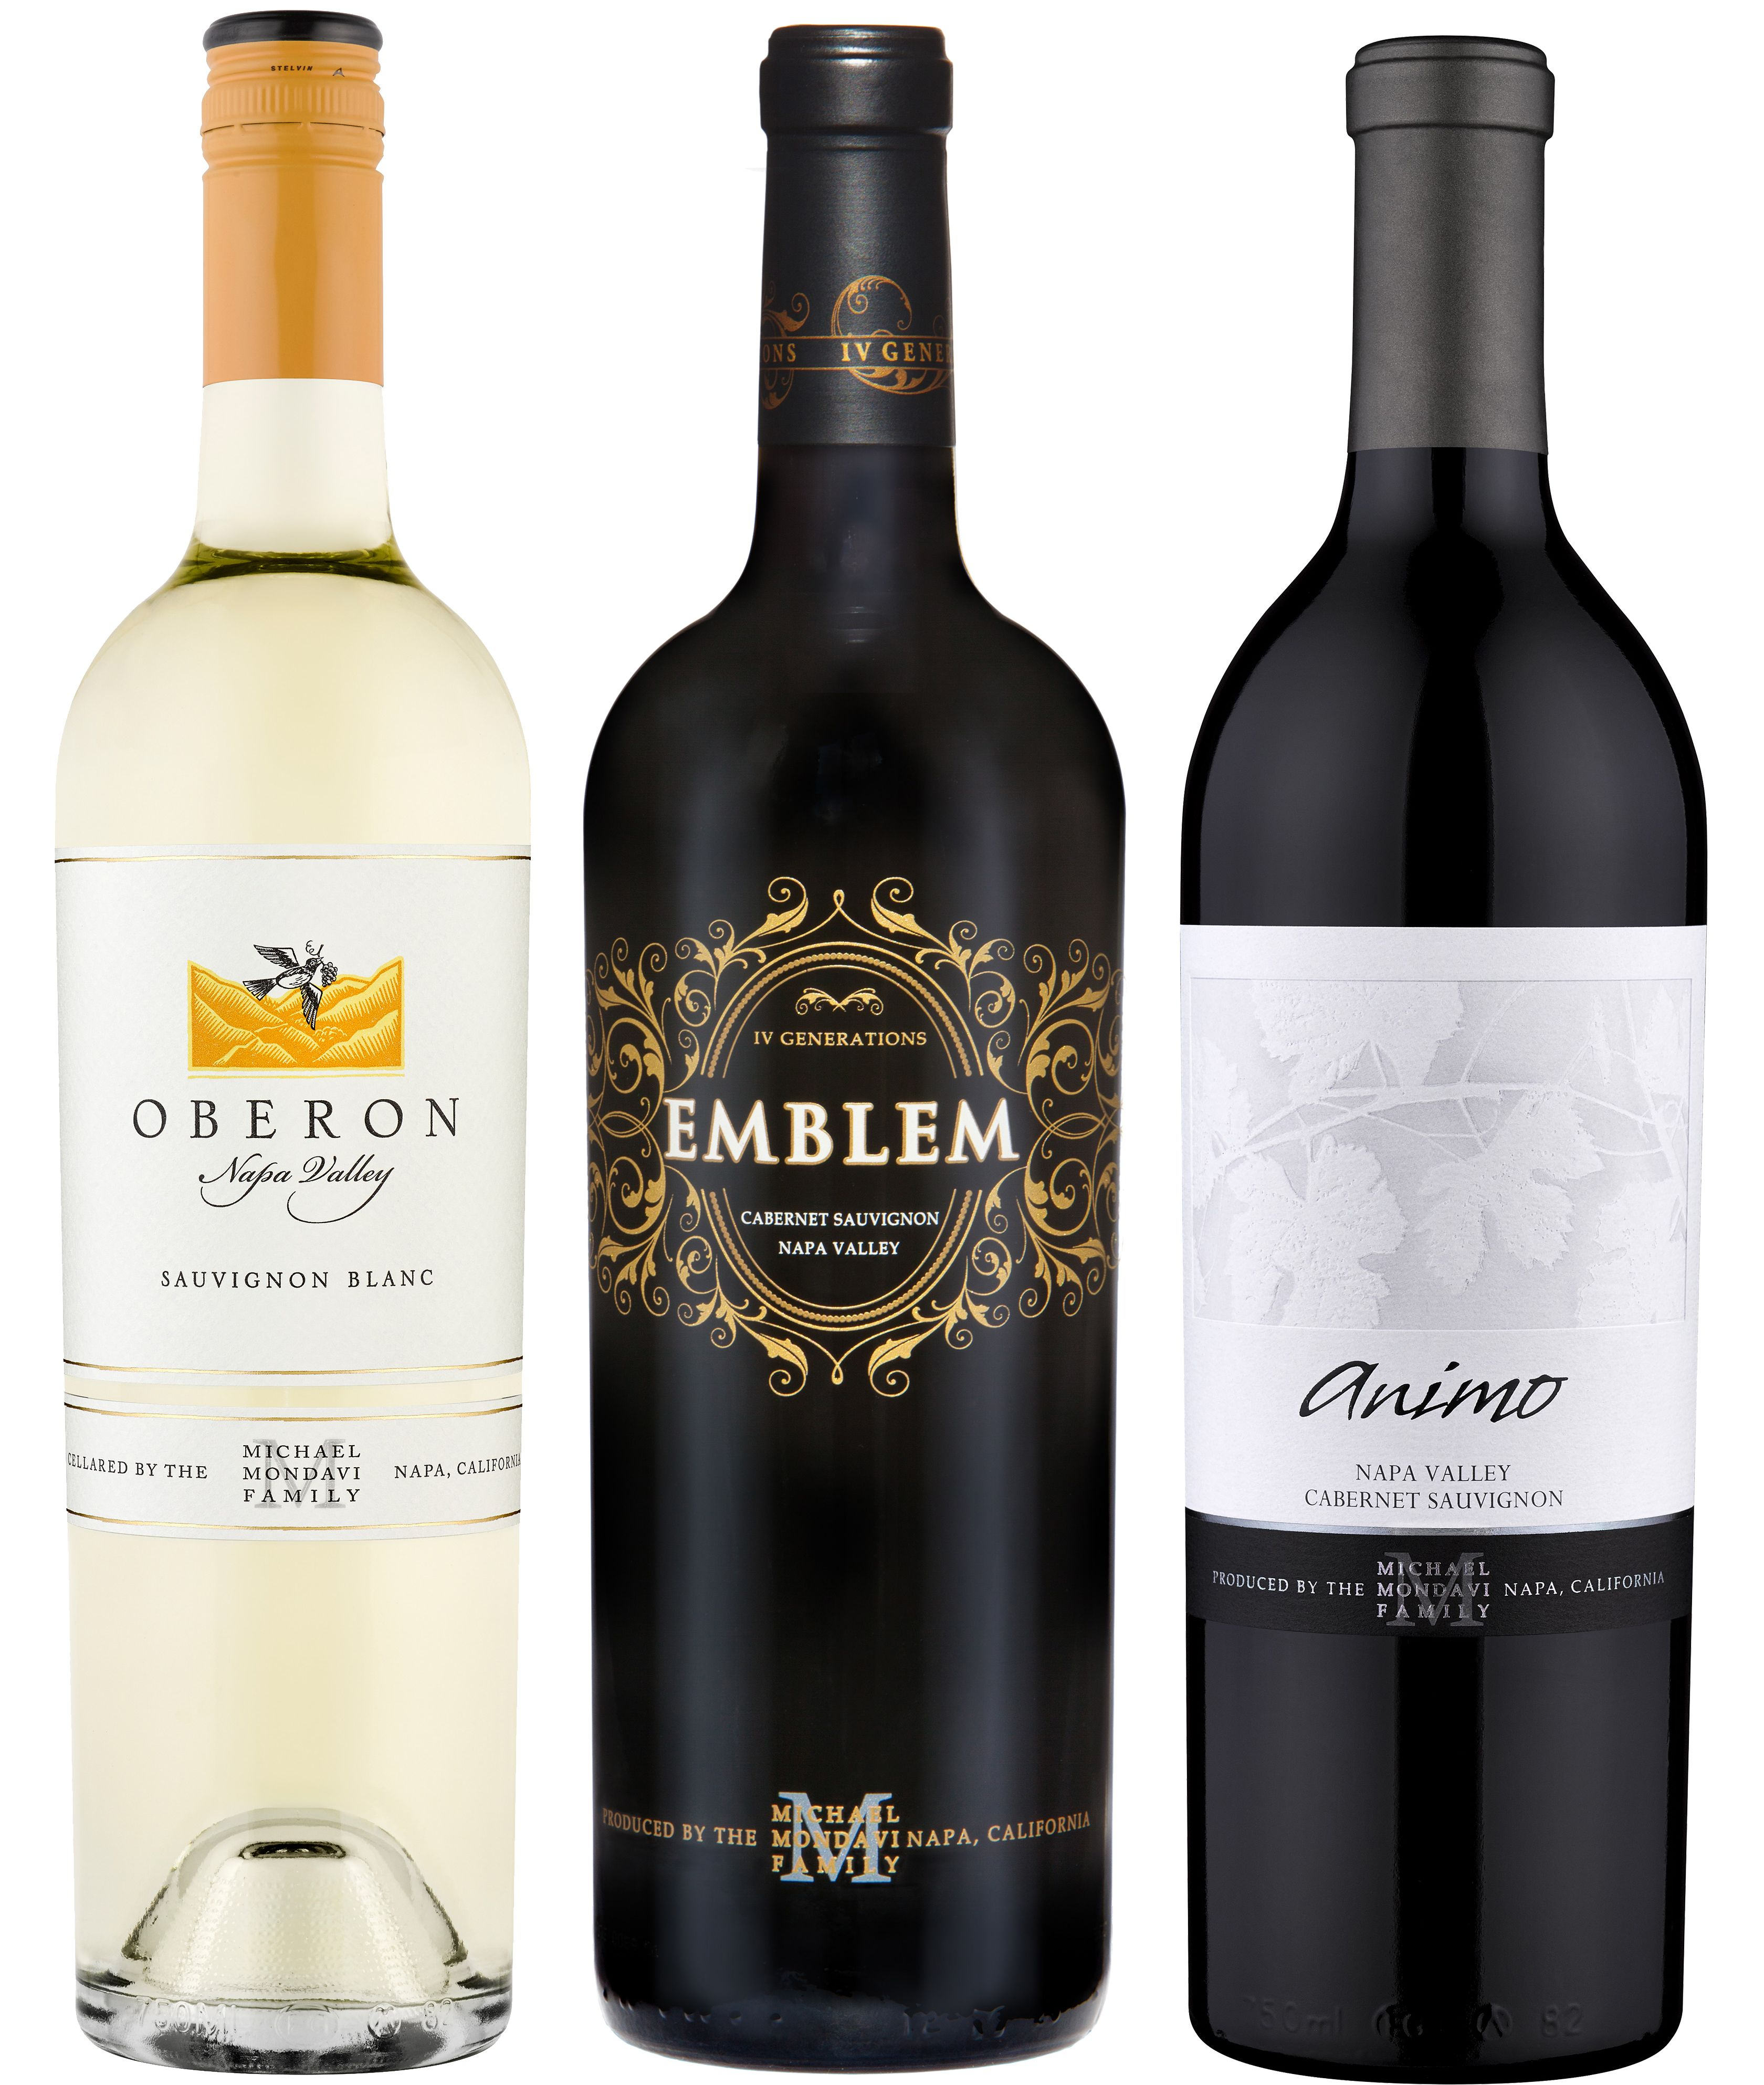 wine.com Michael Mondavi Family Estate Tasting Trio  Gift Product Image